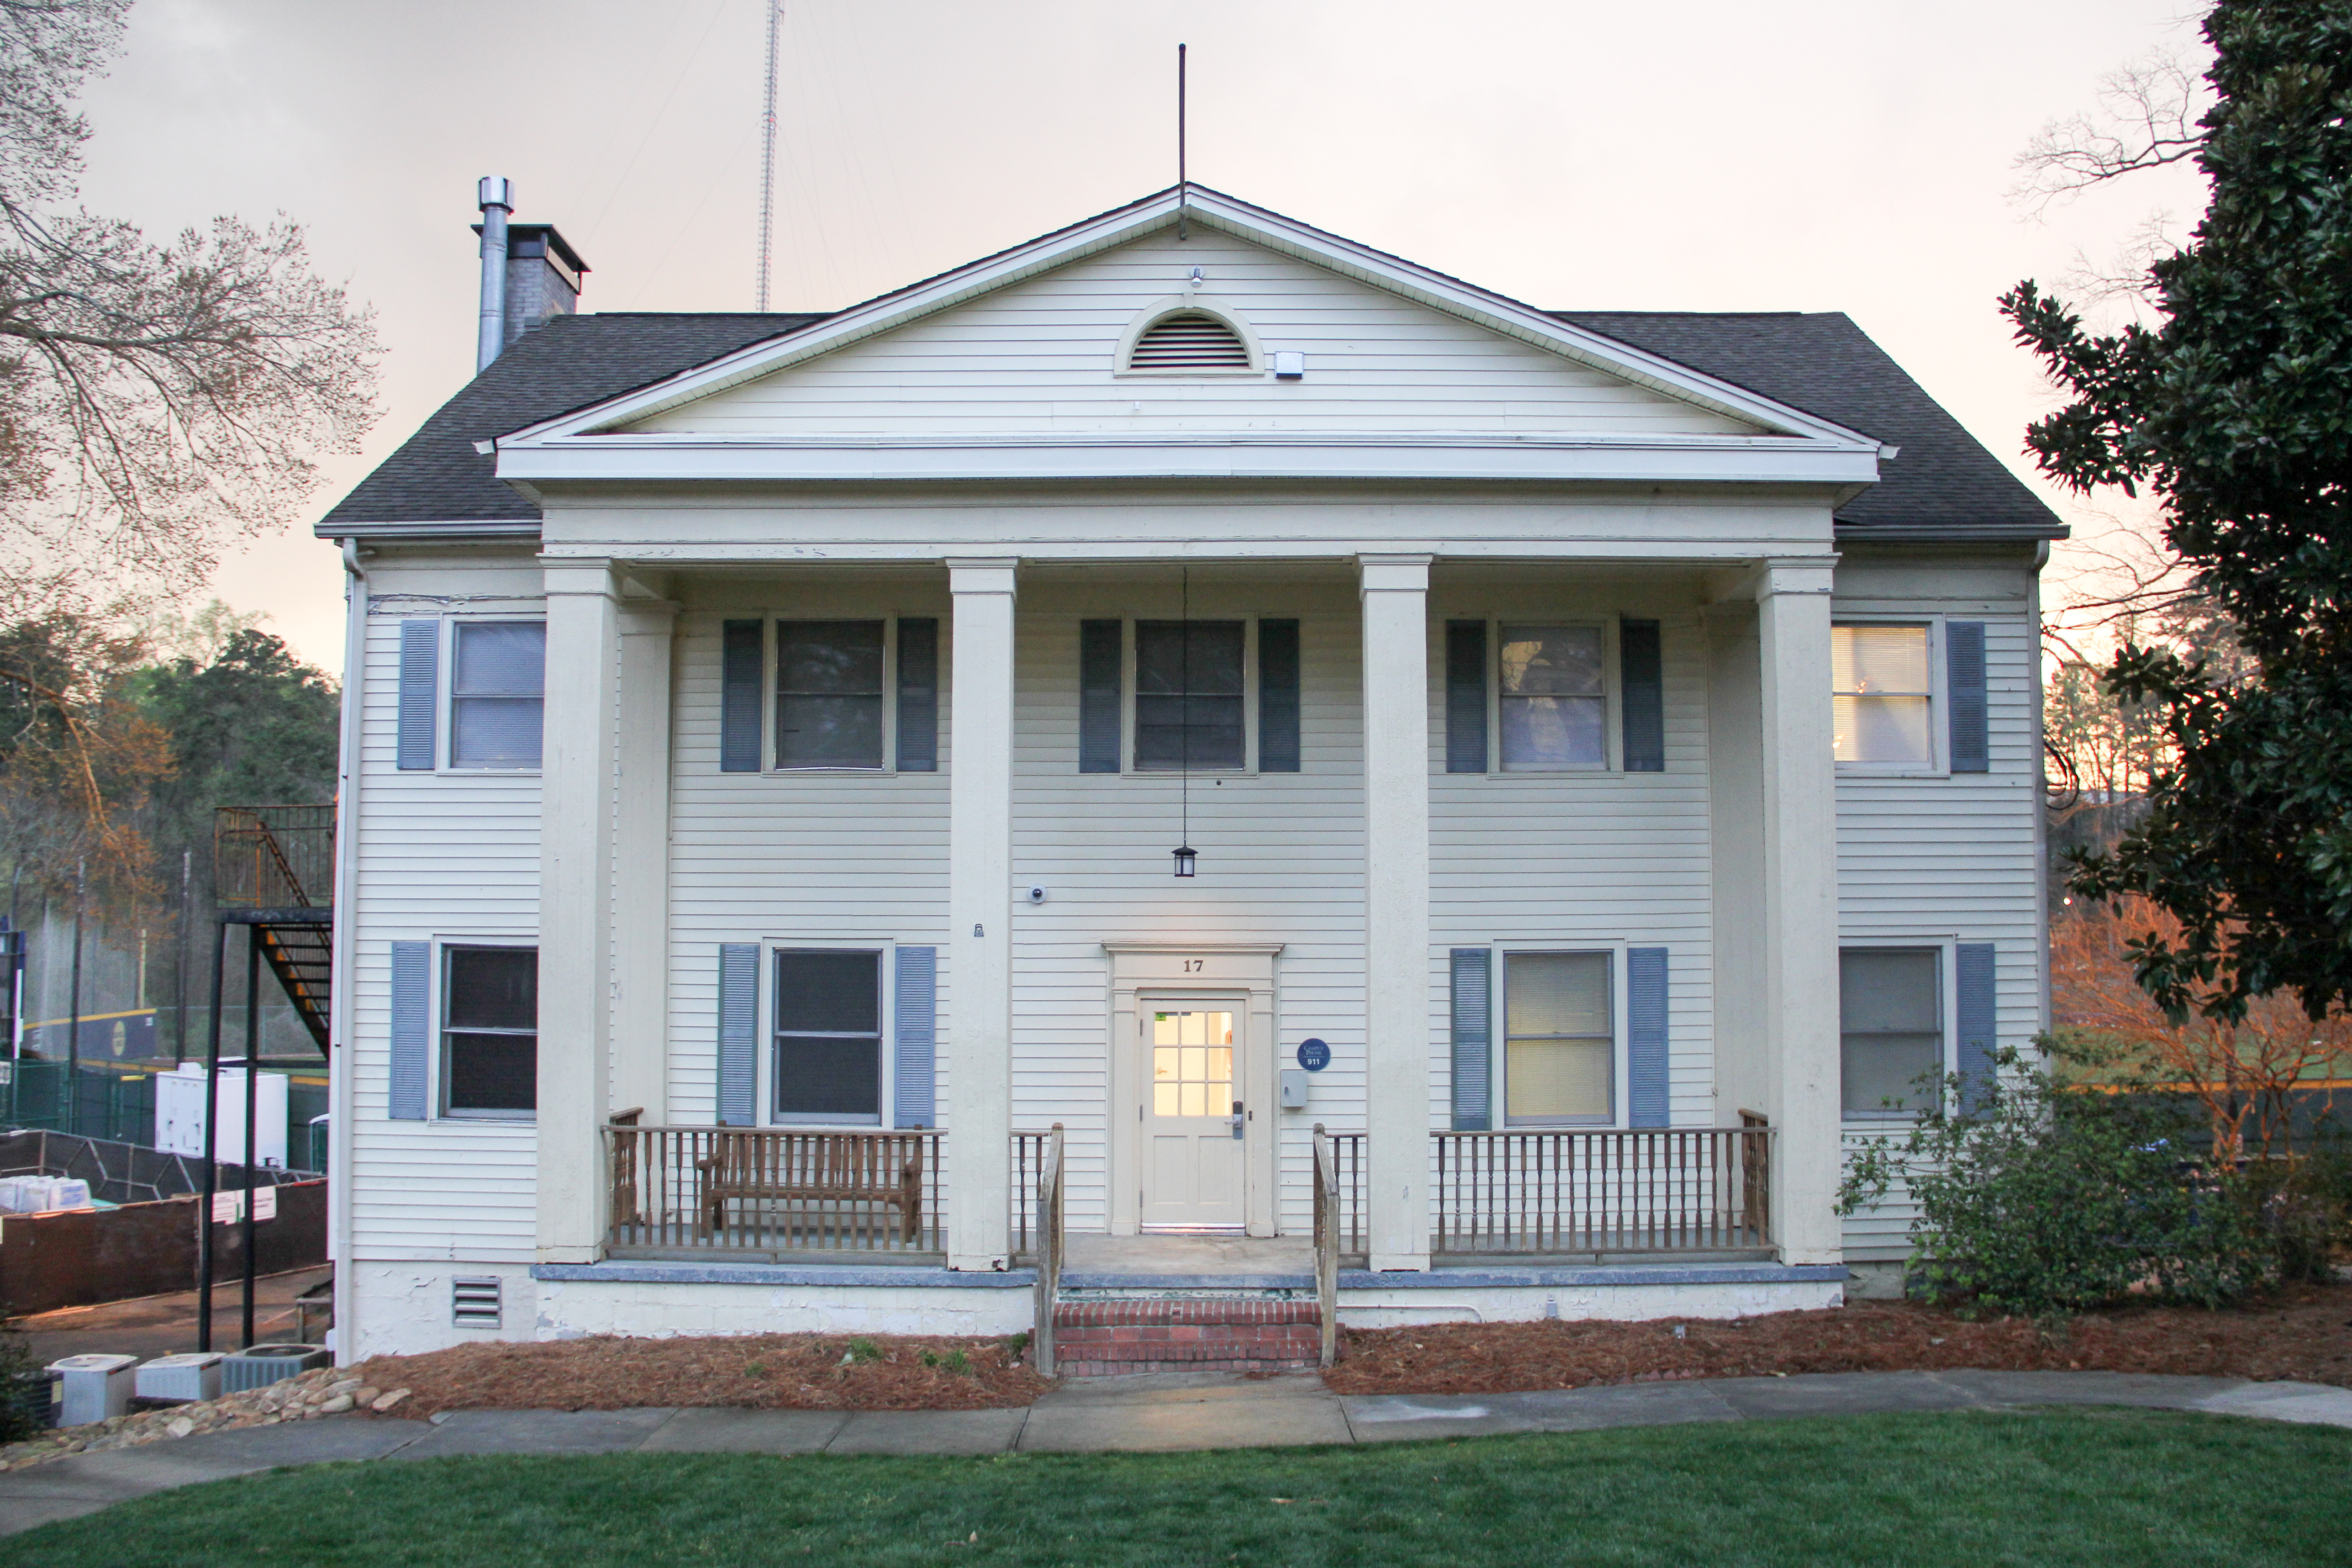 AEPi House Trashed After Notice to Vacate | The Emory Wheel